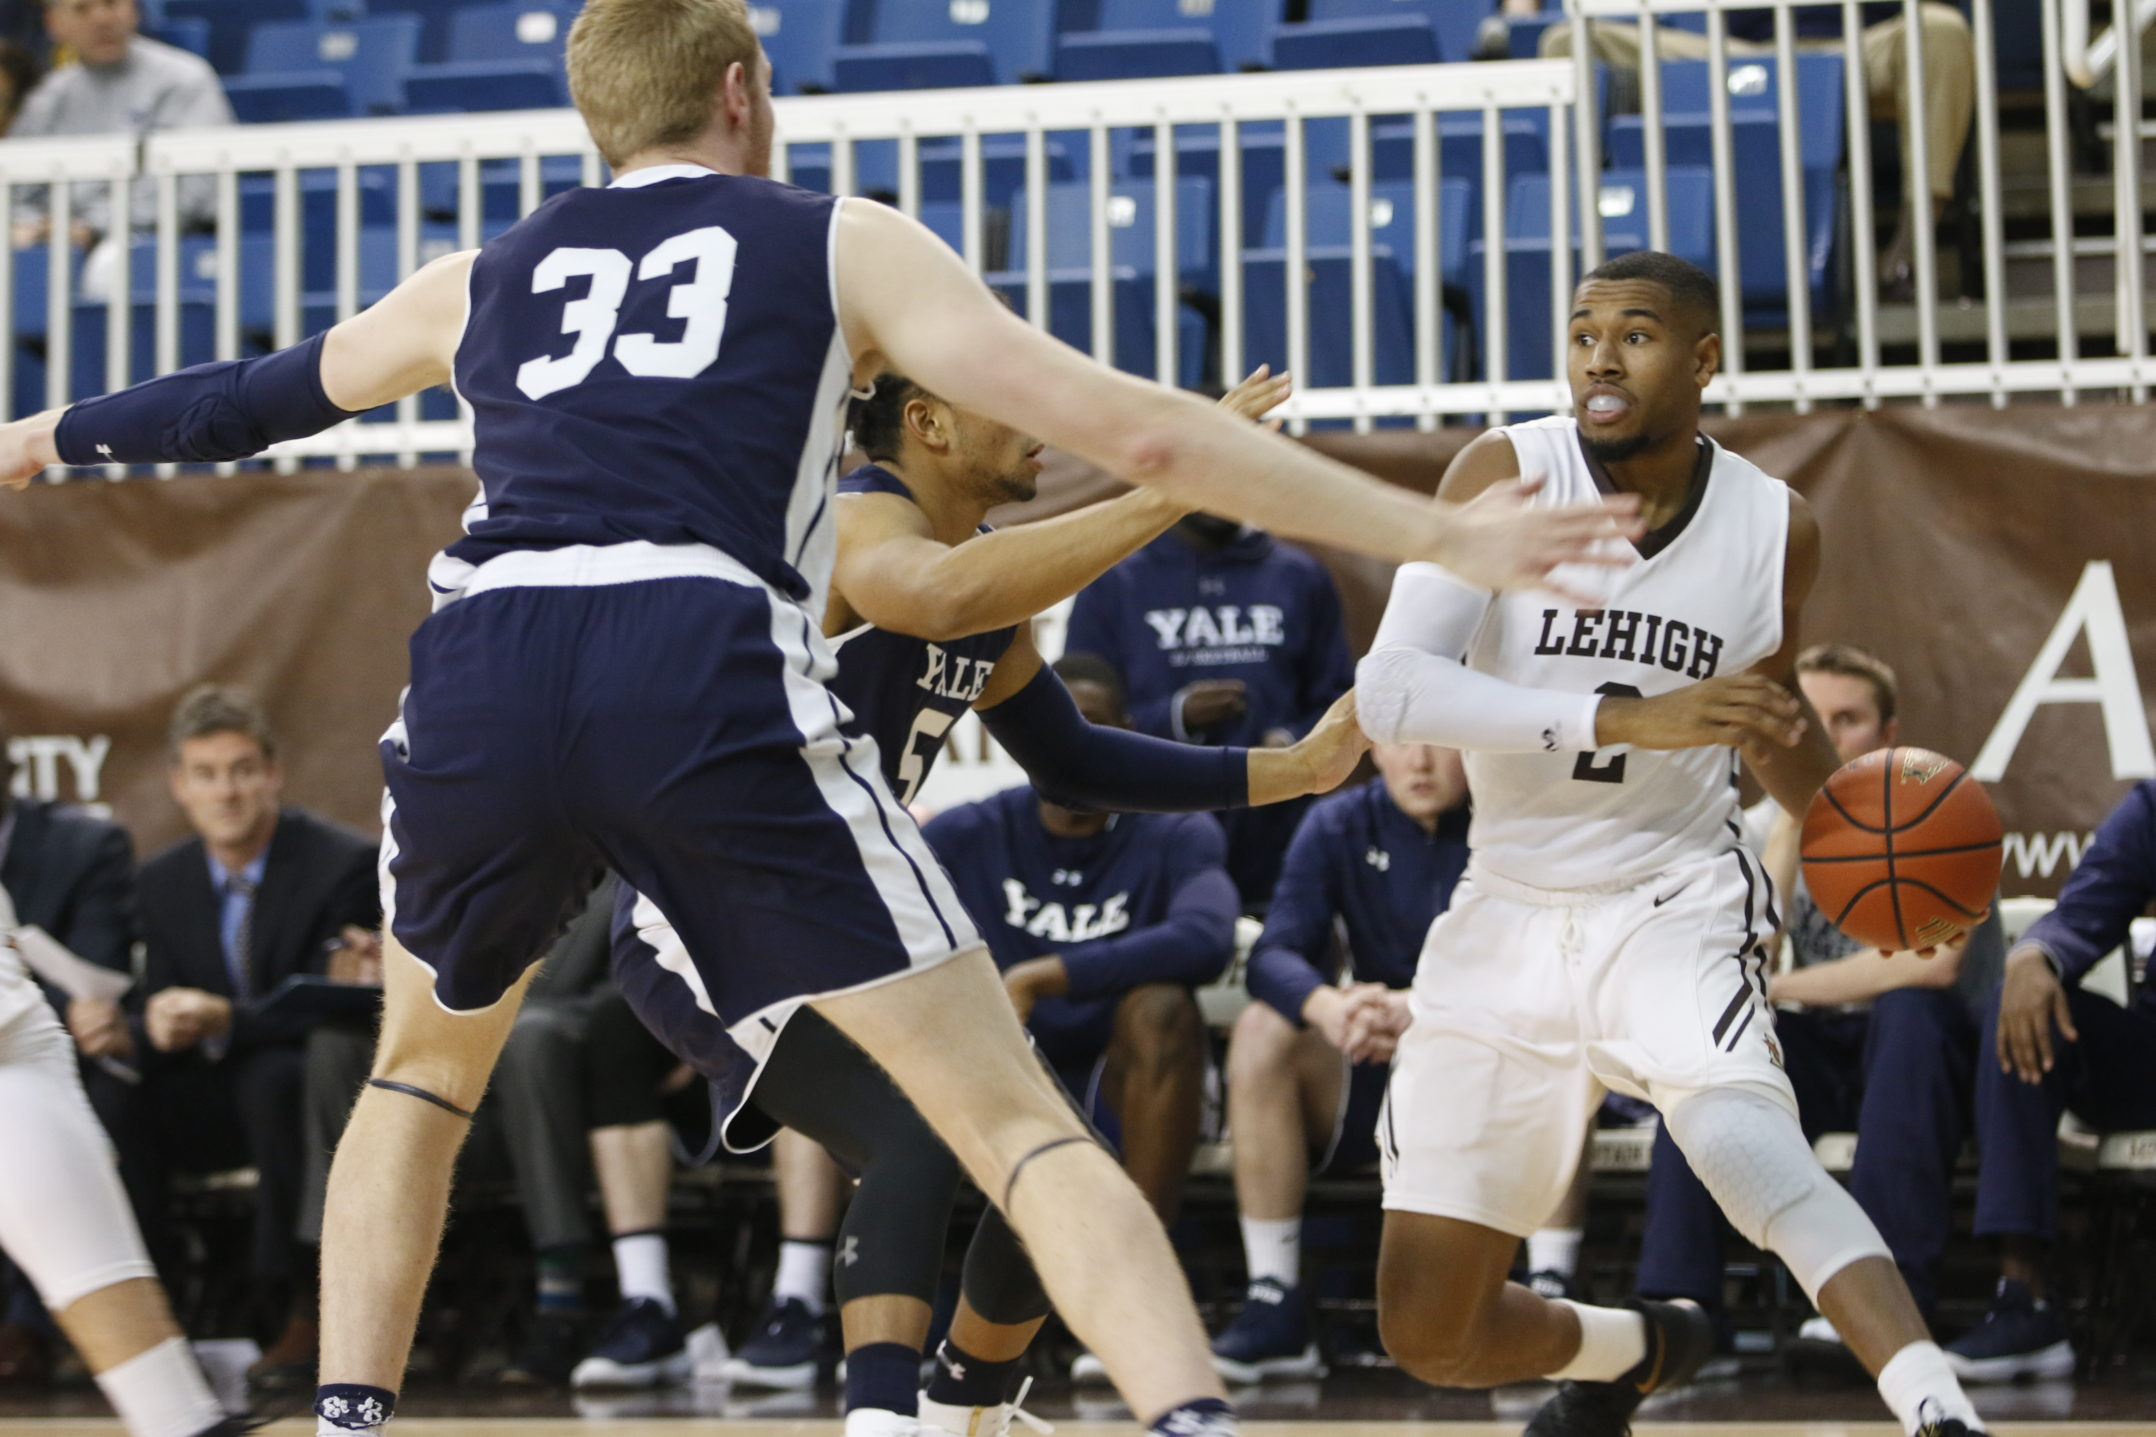 Junior guard Kyle Leufroy looks to get a pass through freshman forward Wyatt Yess and the Yale defense in their matchup on Dec. 6th, 2017 at Stabler Arena. Lehigh would lose the game 86-77 (Matt Bonshak/B&W Staff).